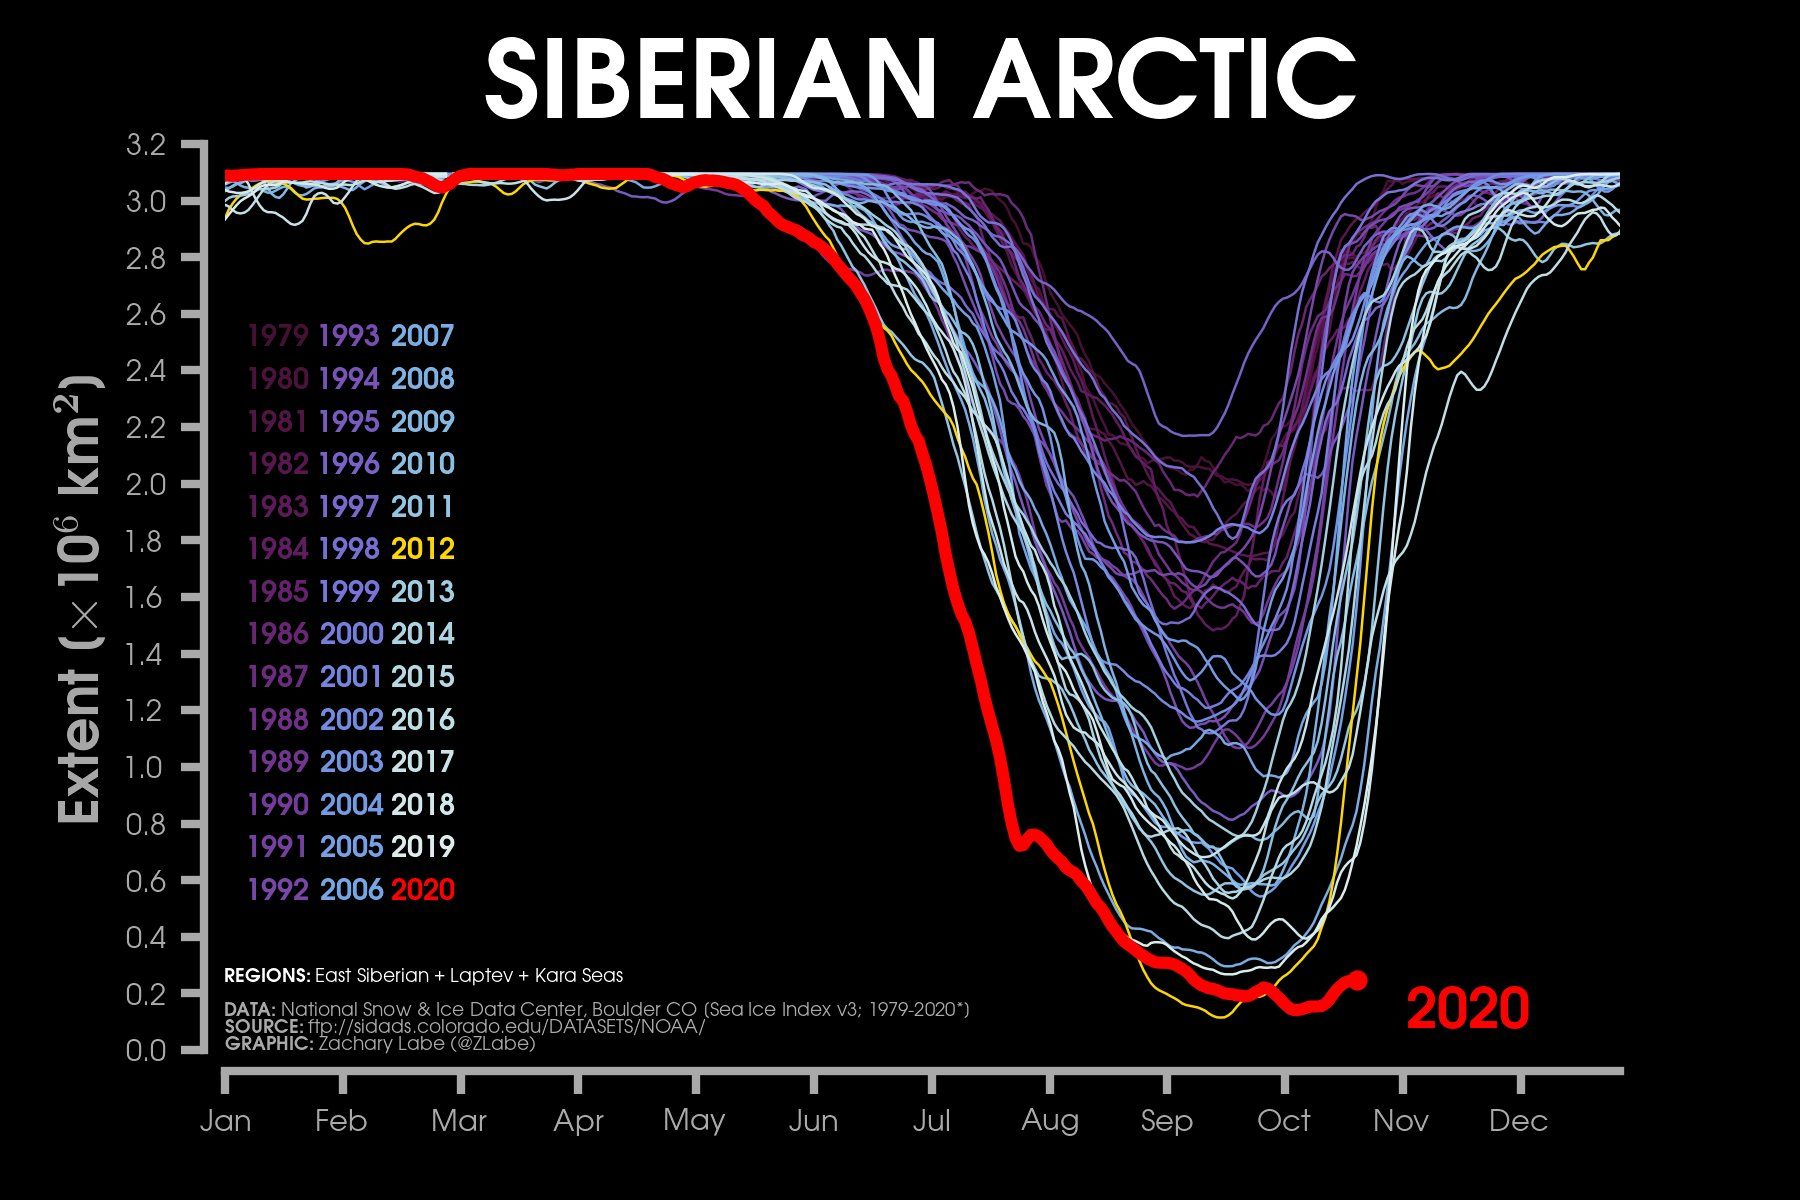 Line graph time series of daily Arctic sea ice extent for the Siberian Arctic for each year from 1979 to 2020. This region includes the East Siberian, Laptev, and Kara Seas. 2020 is a significant outlier during this melt season time period.